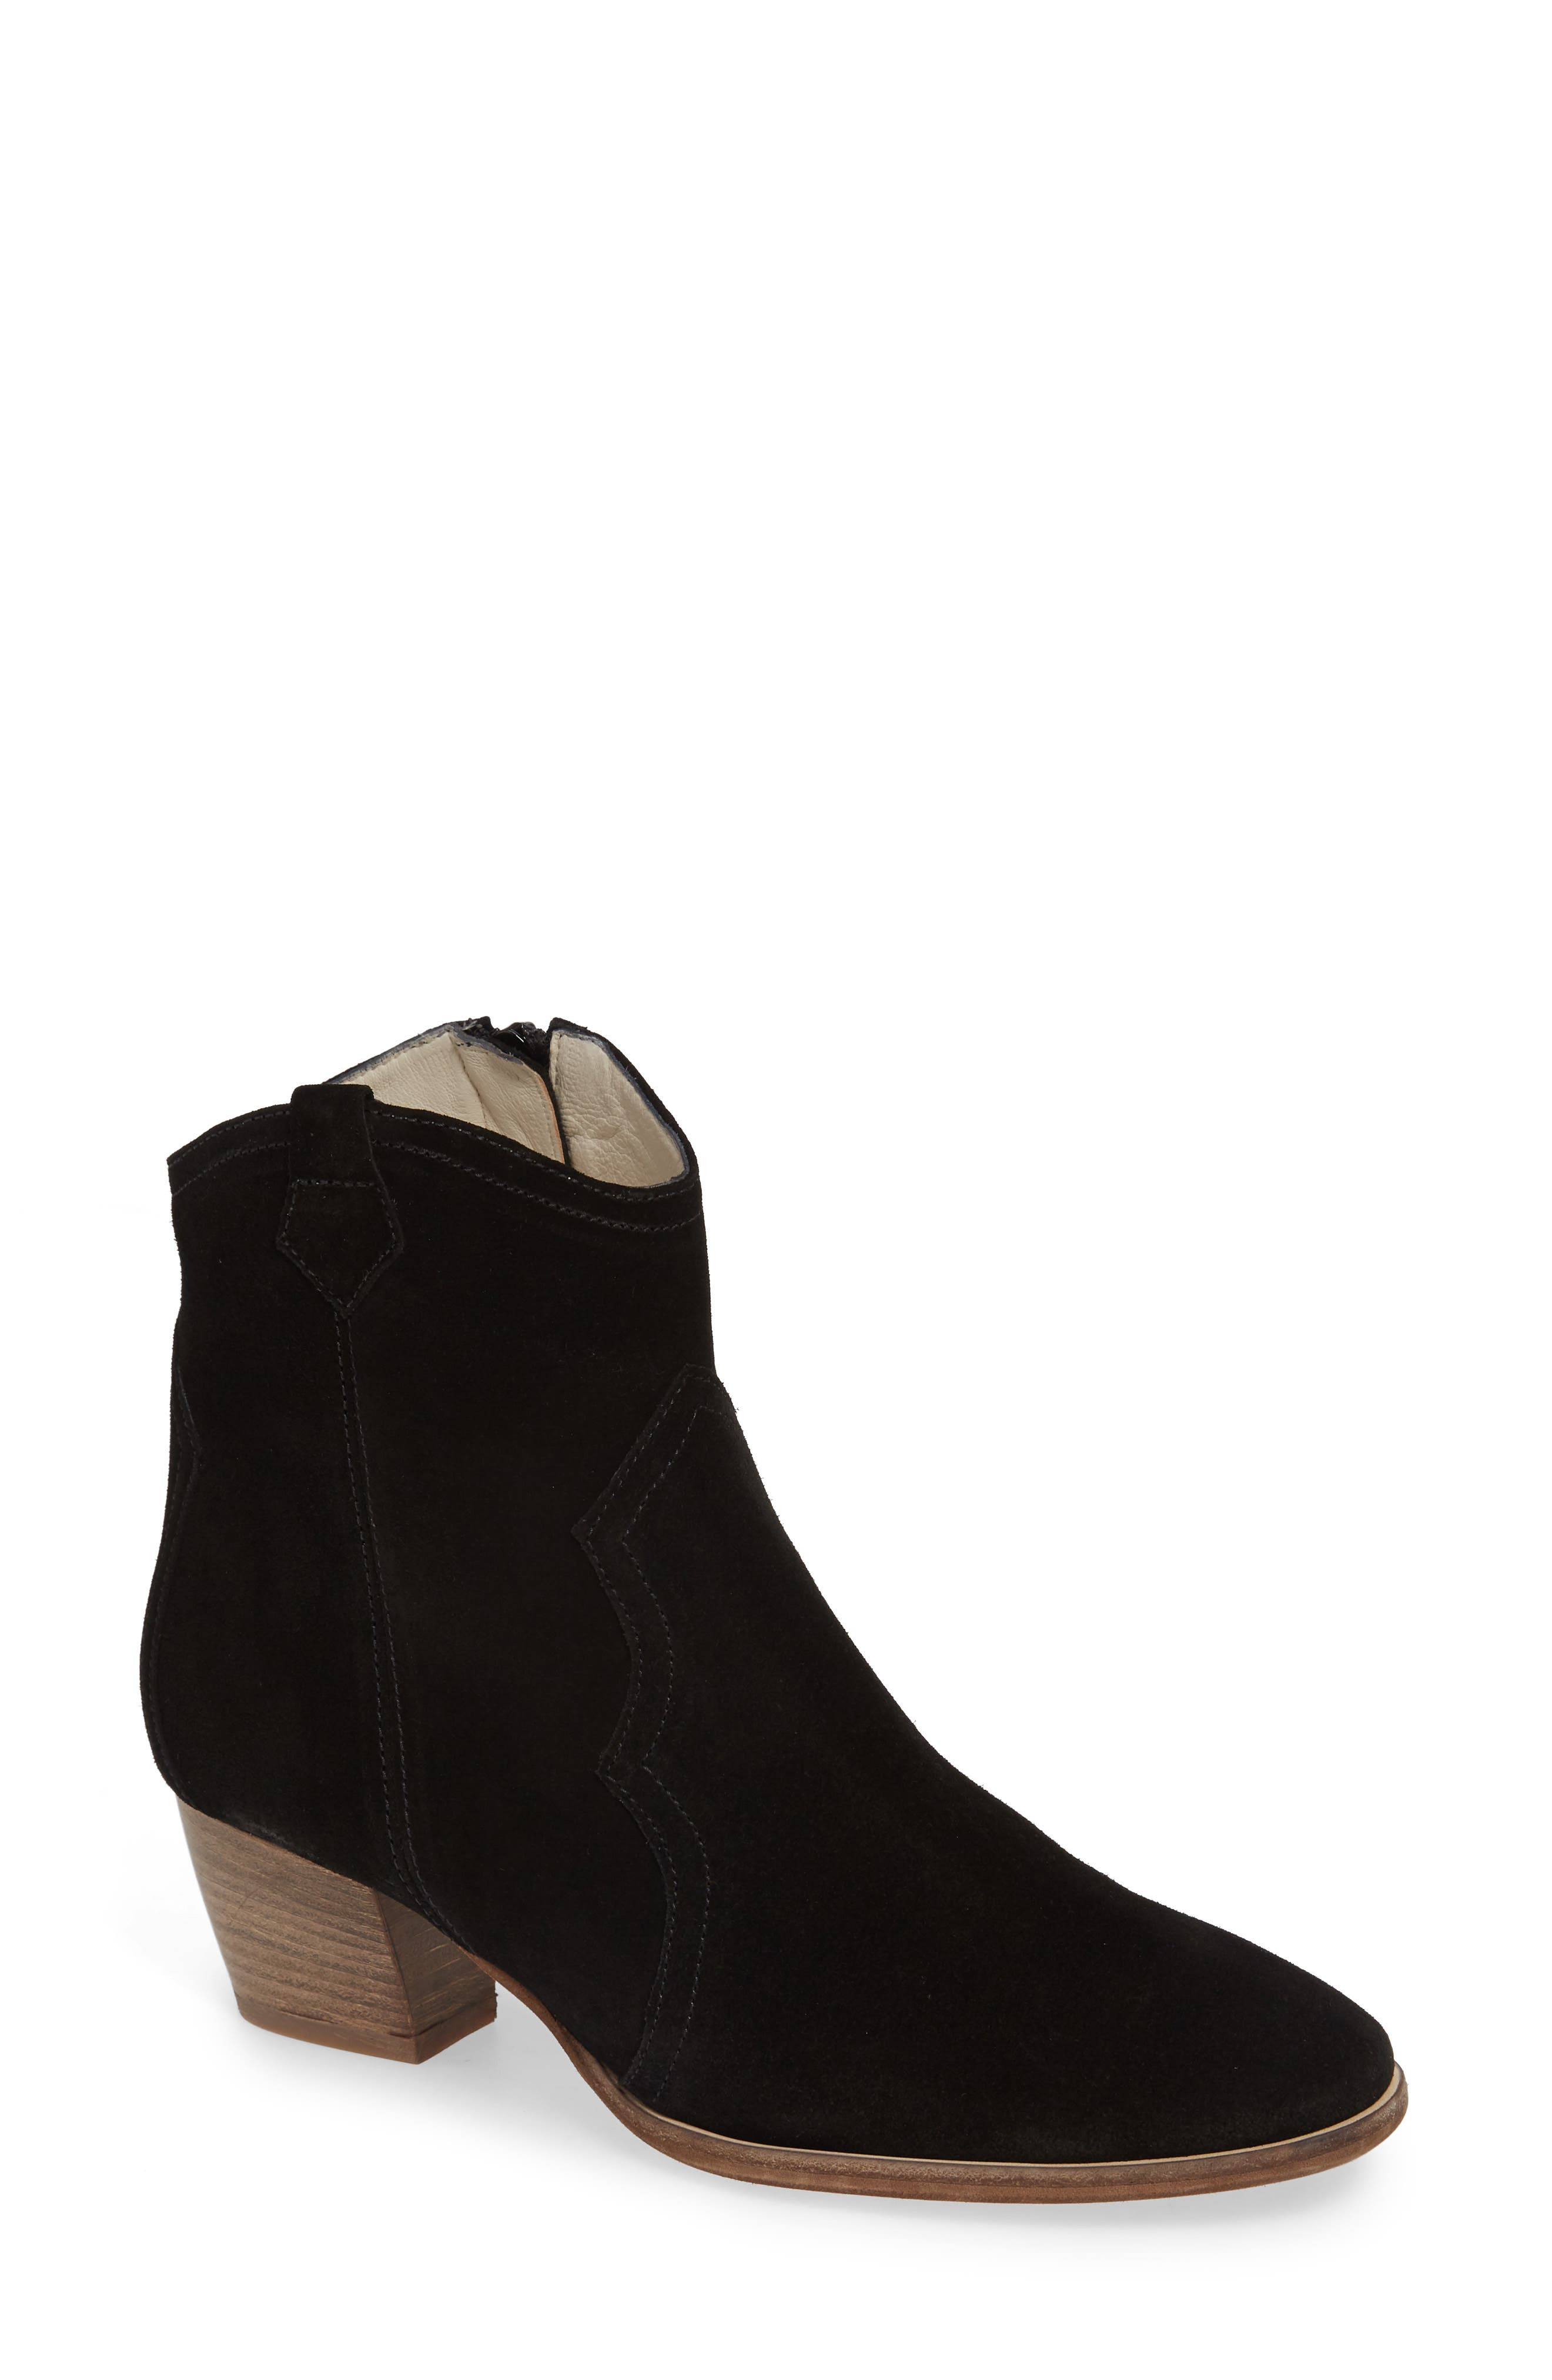 Raggio Western Bootie,                             Main thumbnail 1, color,                             BLACK VELOUR SUEDE